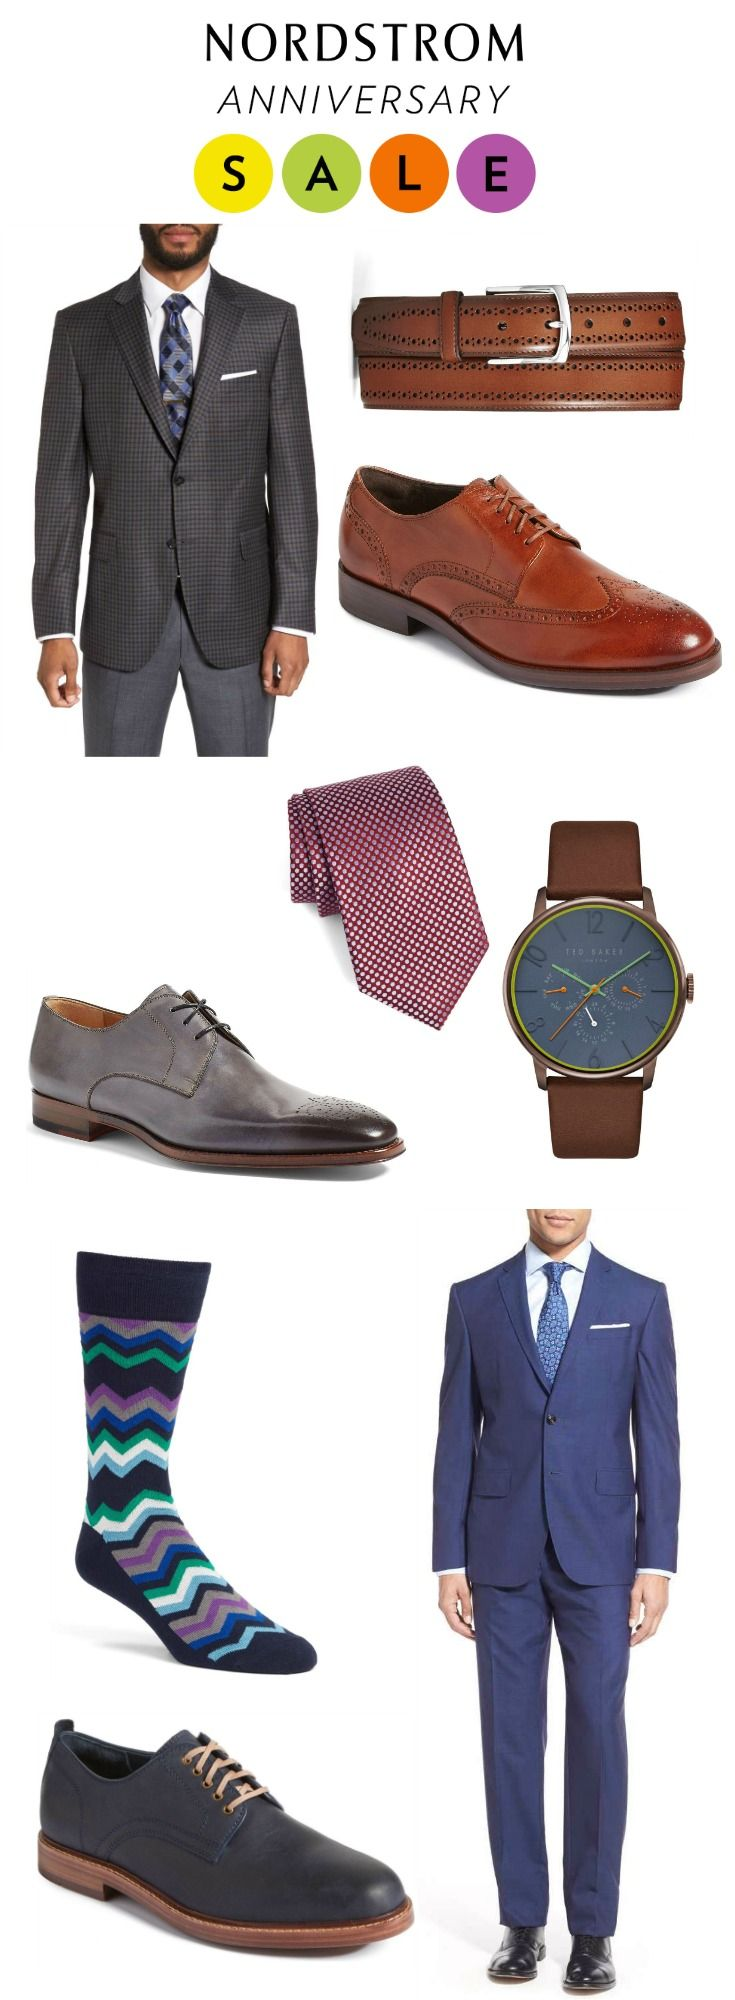 Save Big on Suit Style During the Nordstrom Anniversary Sale